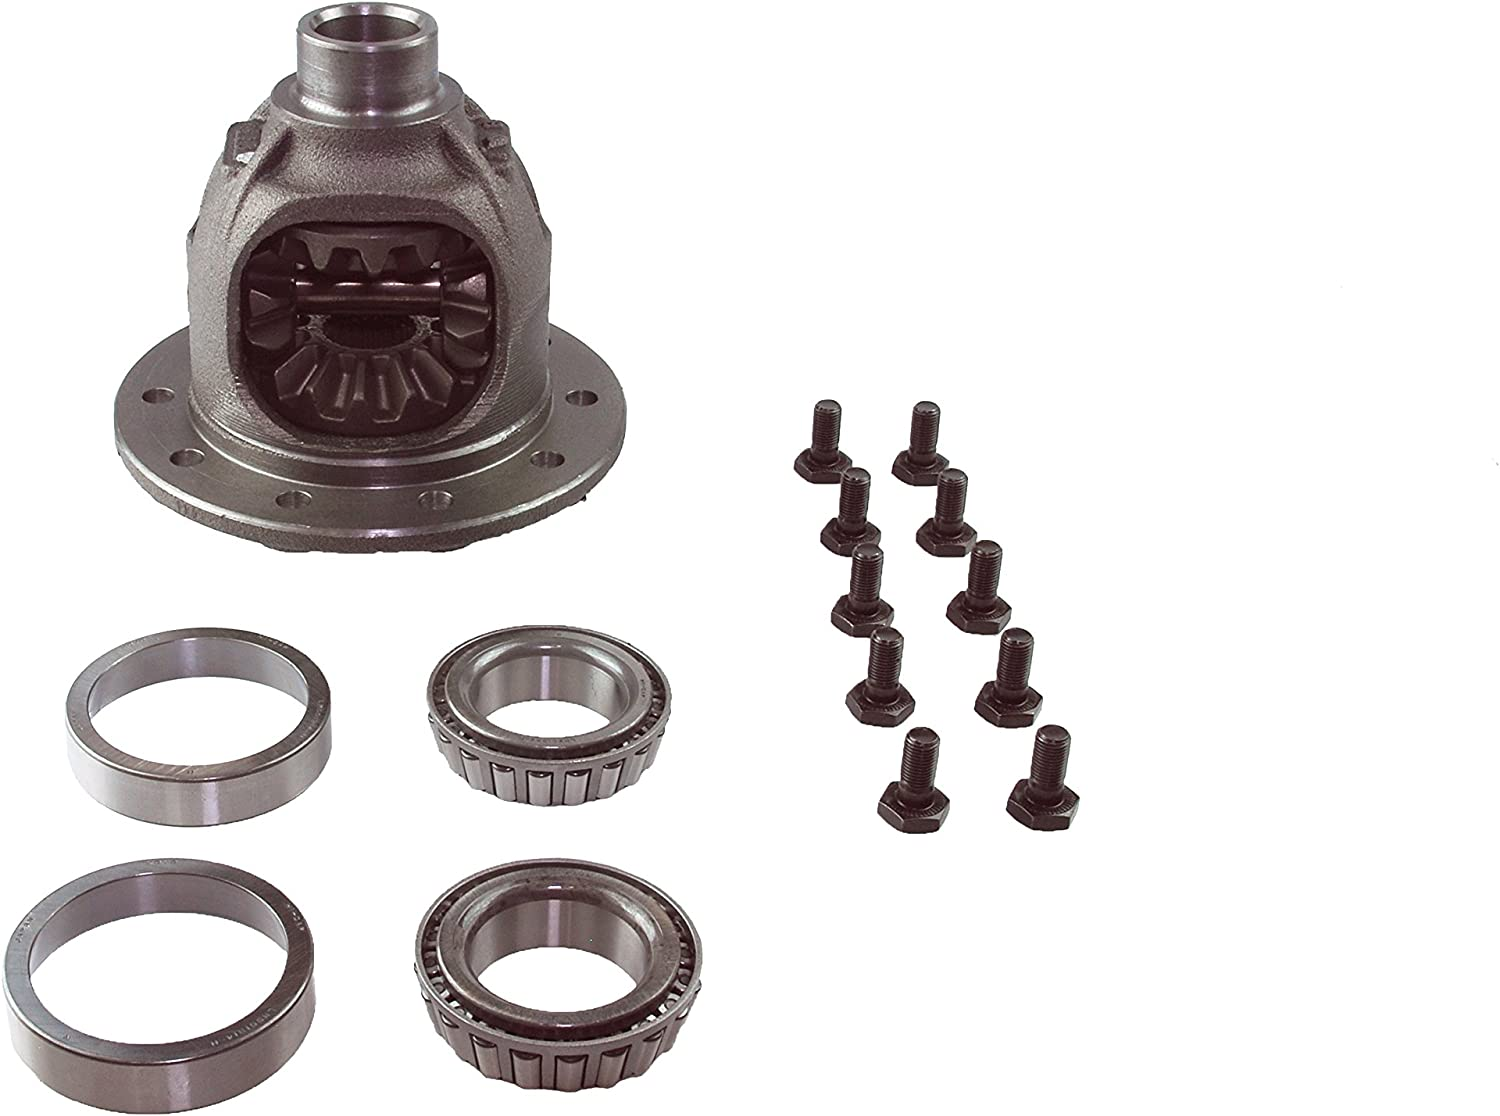 Spicer 2005084 Differential Case Assembly Kit